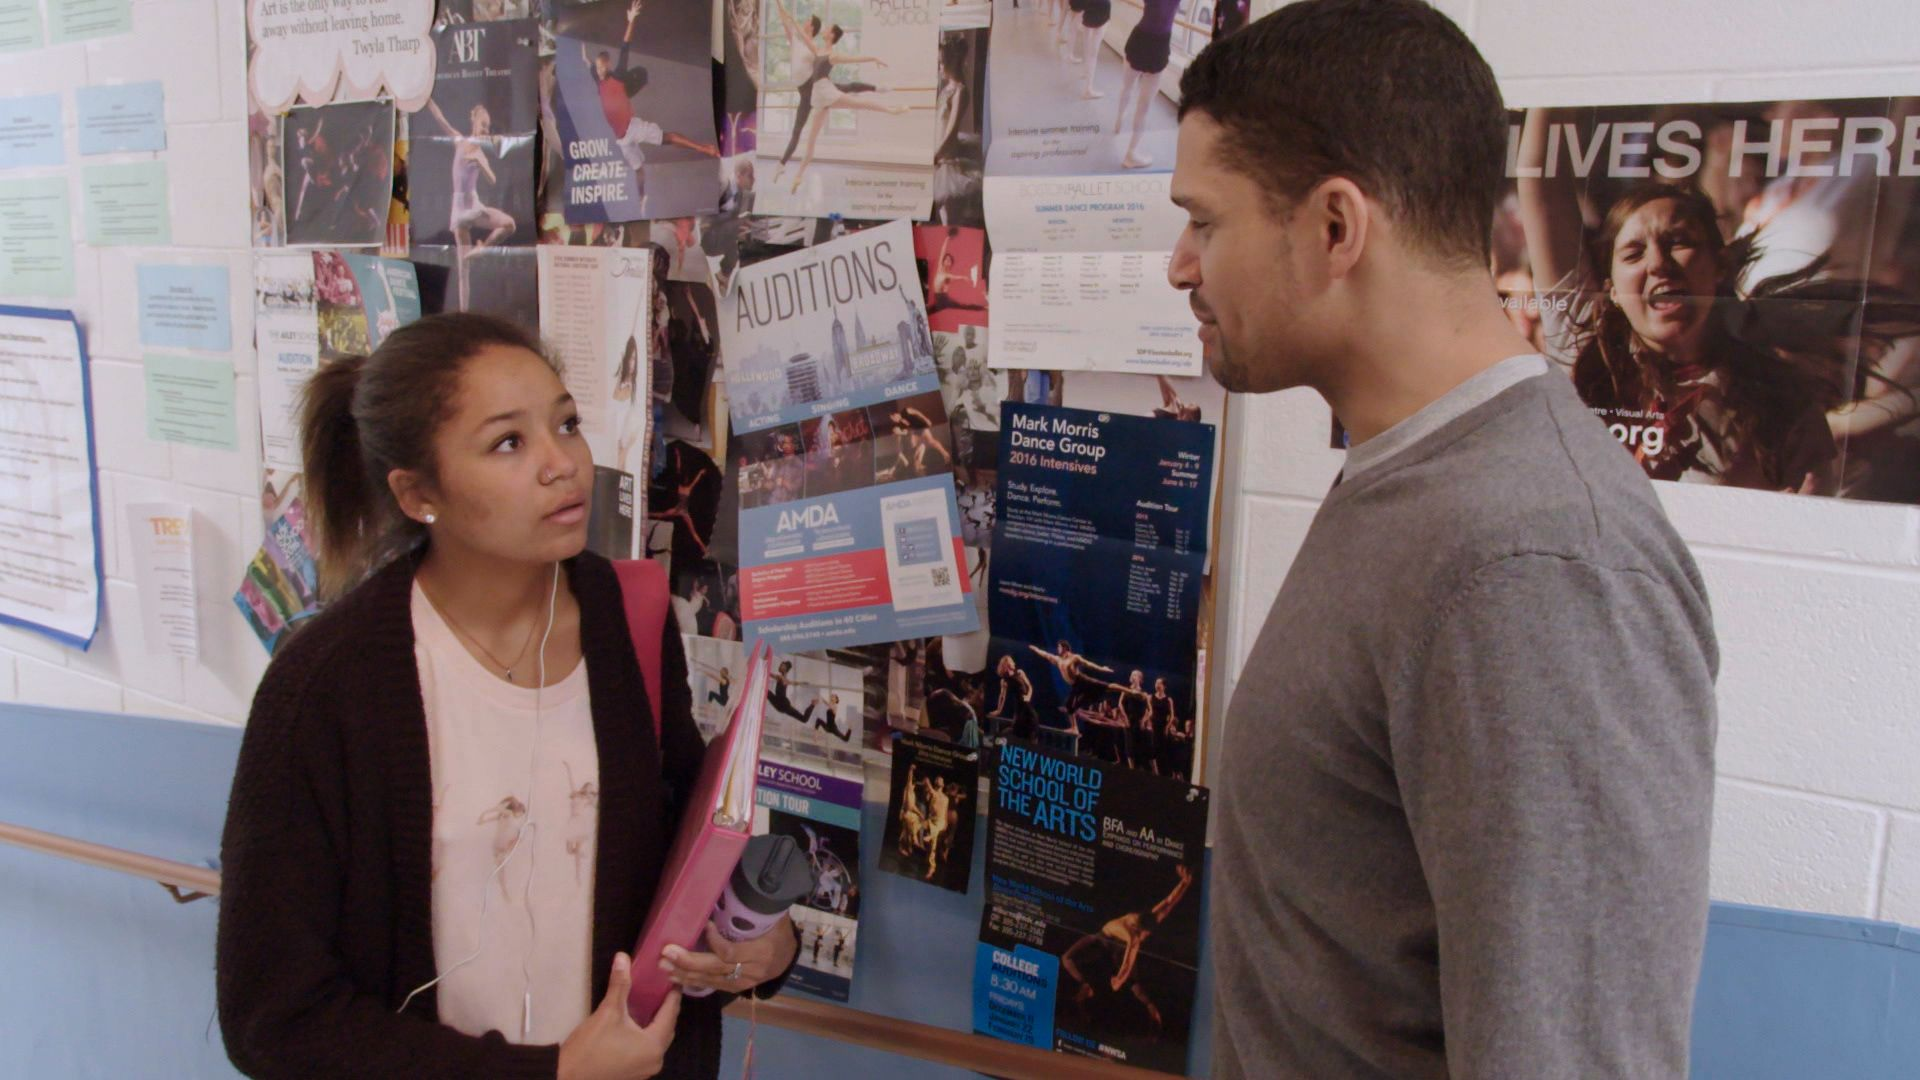 A female teen is standing in a school hallway talking to a male teacher; there are dance fliers on a bulletin board on the wall beside them.